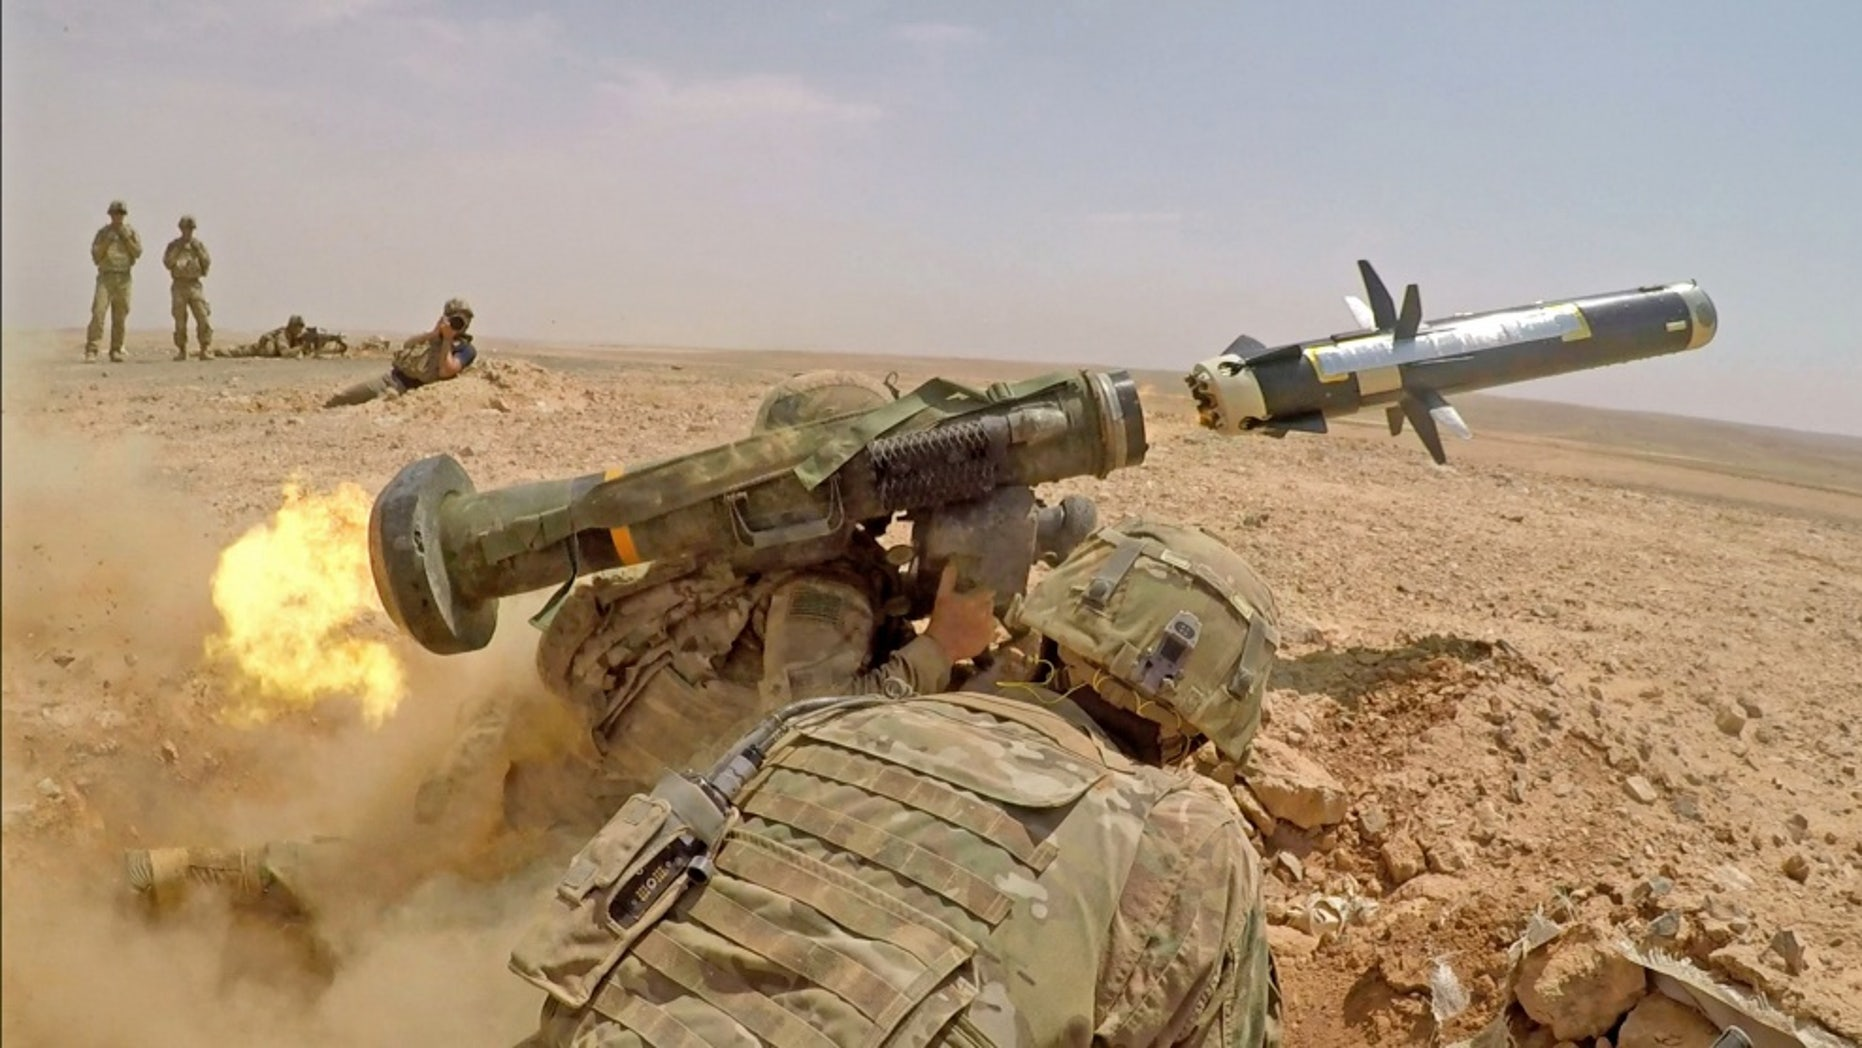 Infantry Soldiers with 1st Battalion, 8th Infantry Regiment, 3rd Armored Brigade Combat Team, 4th Infantry Division, glow an FGM-148 Javelin during a total arms live glow practice in Jordan on Aug 27, 2019, in support of Eager Lion - record photo.